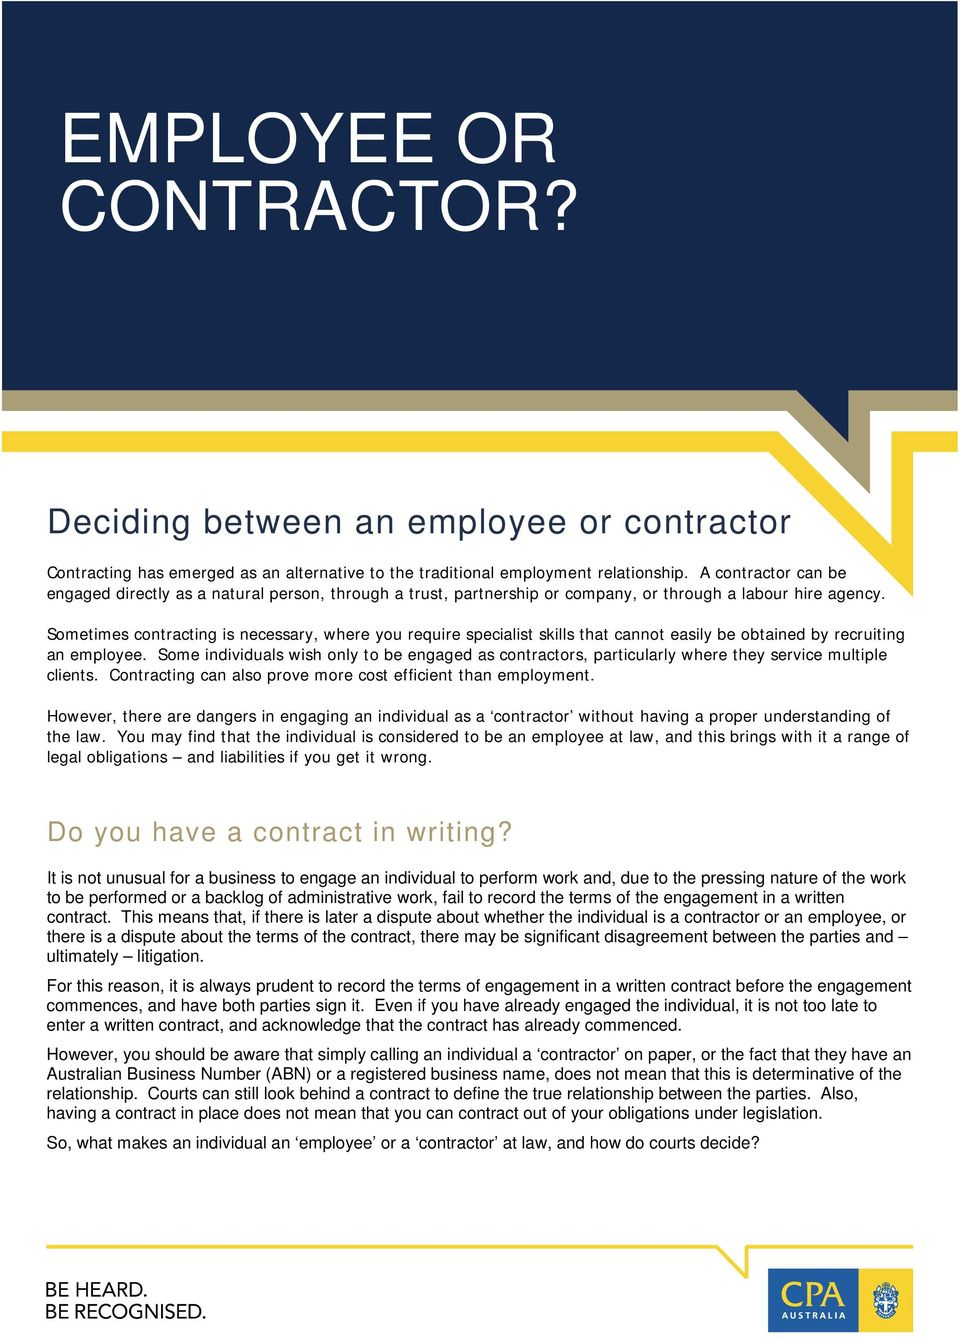 Sometimes contracting is necessary, where you require specialist skills that cannot easily be obtained by recruiting an employee.